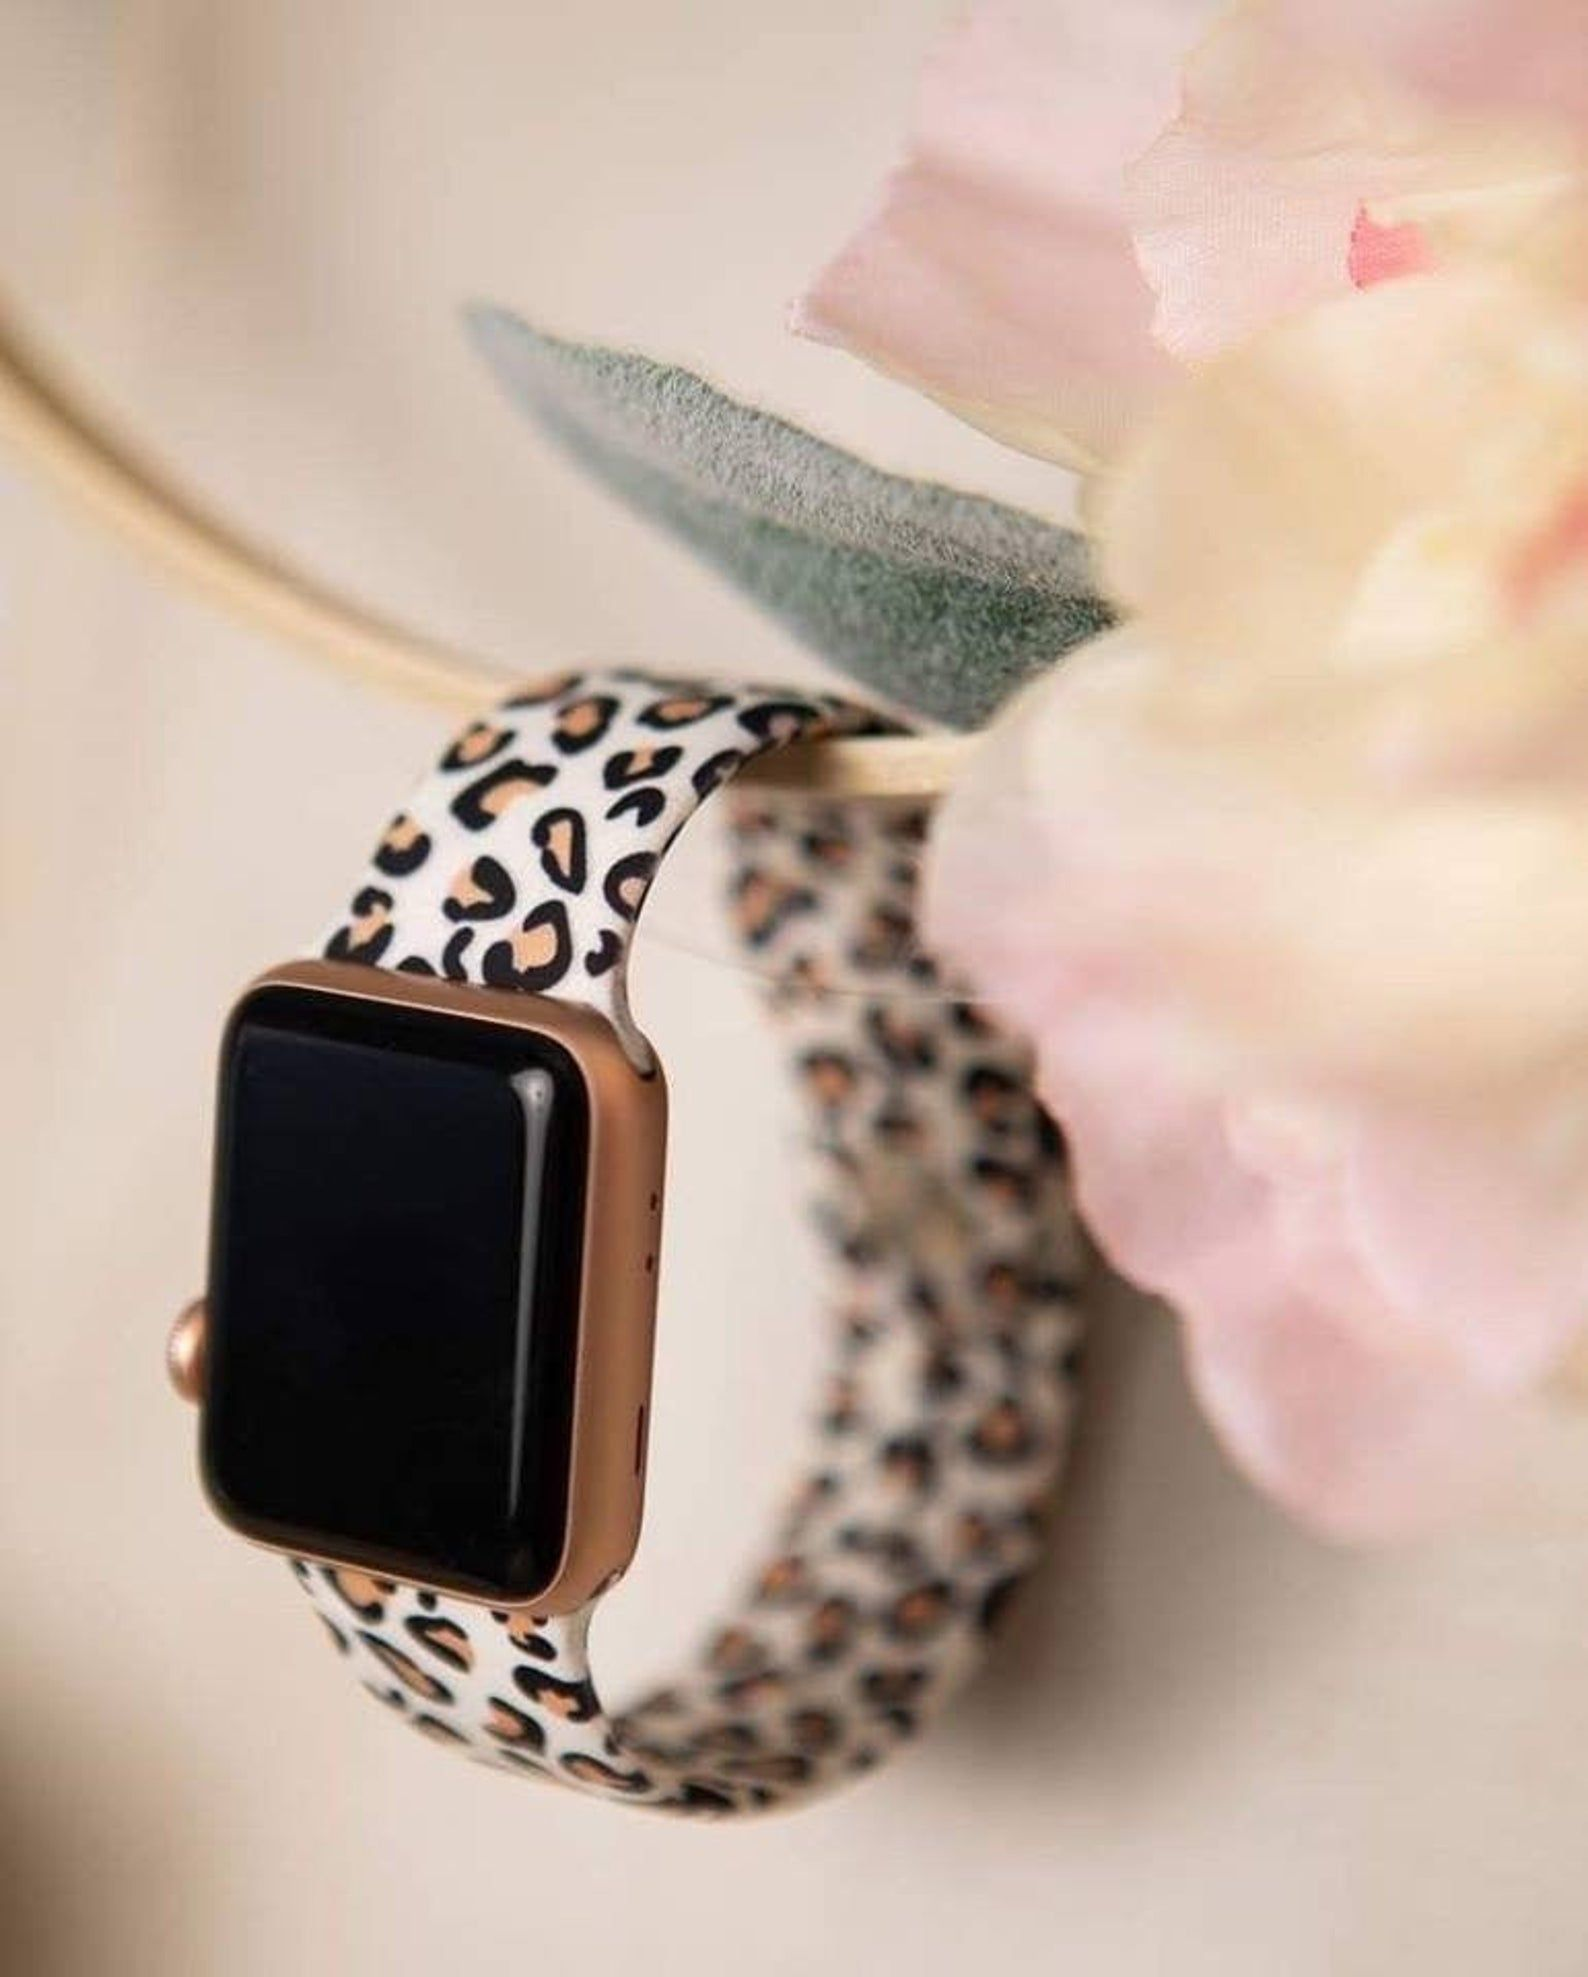 Cheetah Animal Print Leopard Print Silicone Apple Watch Band Etsy In 2021 Cute Apple Watch Bands Apple Watch Accessories Apple Watch